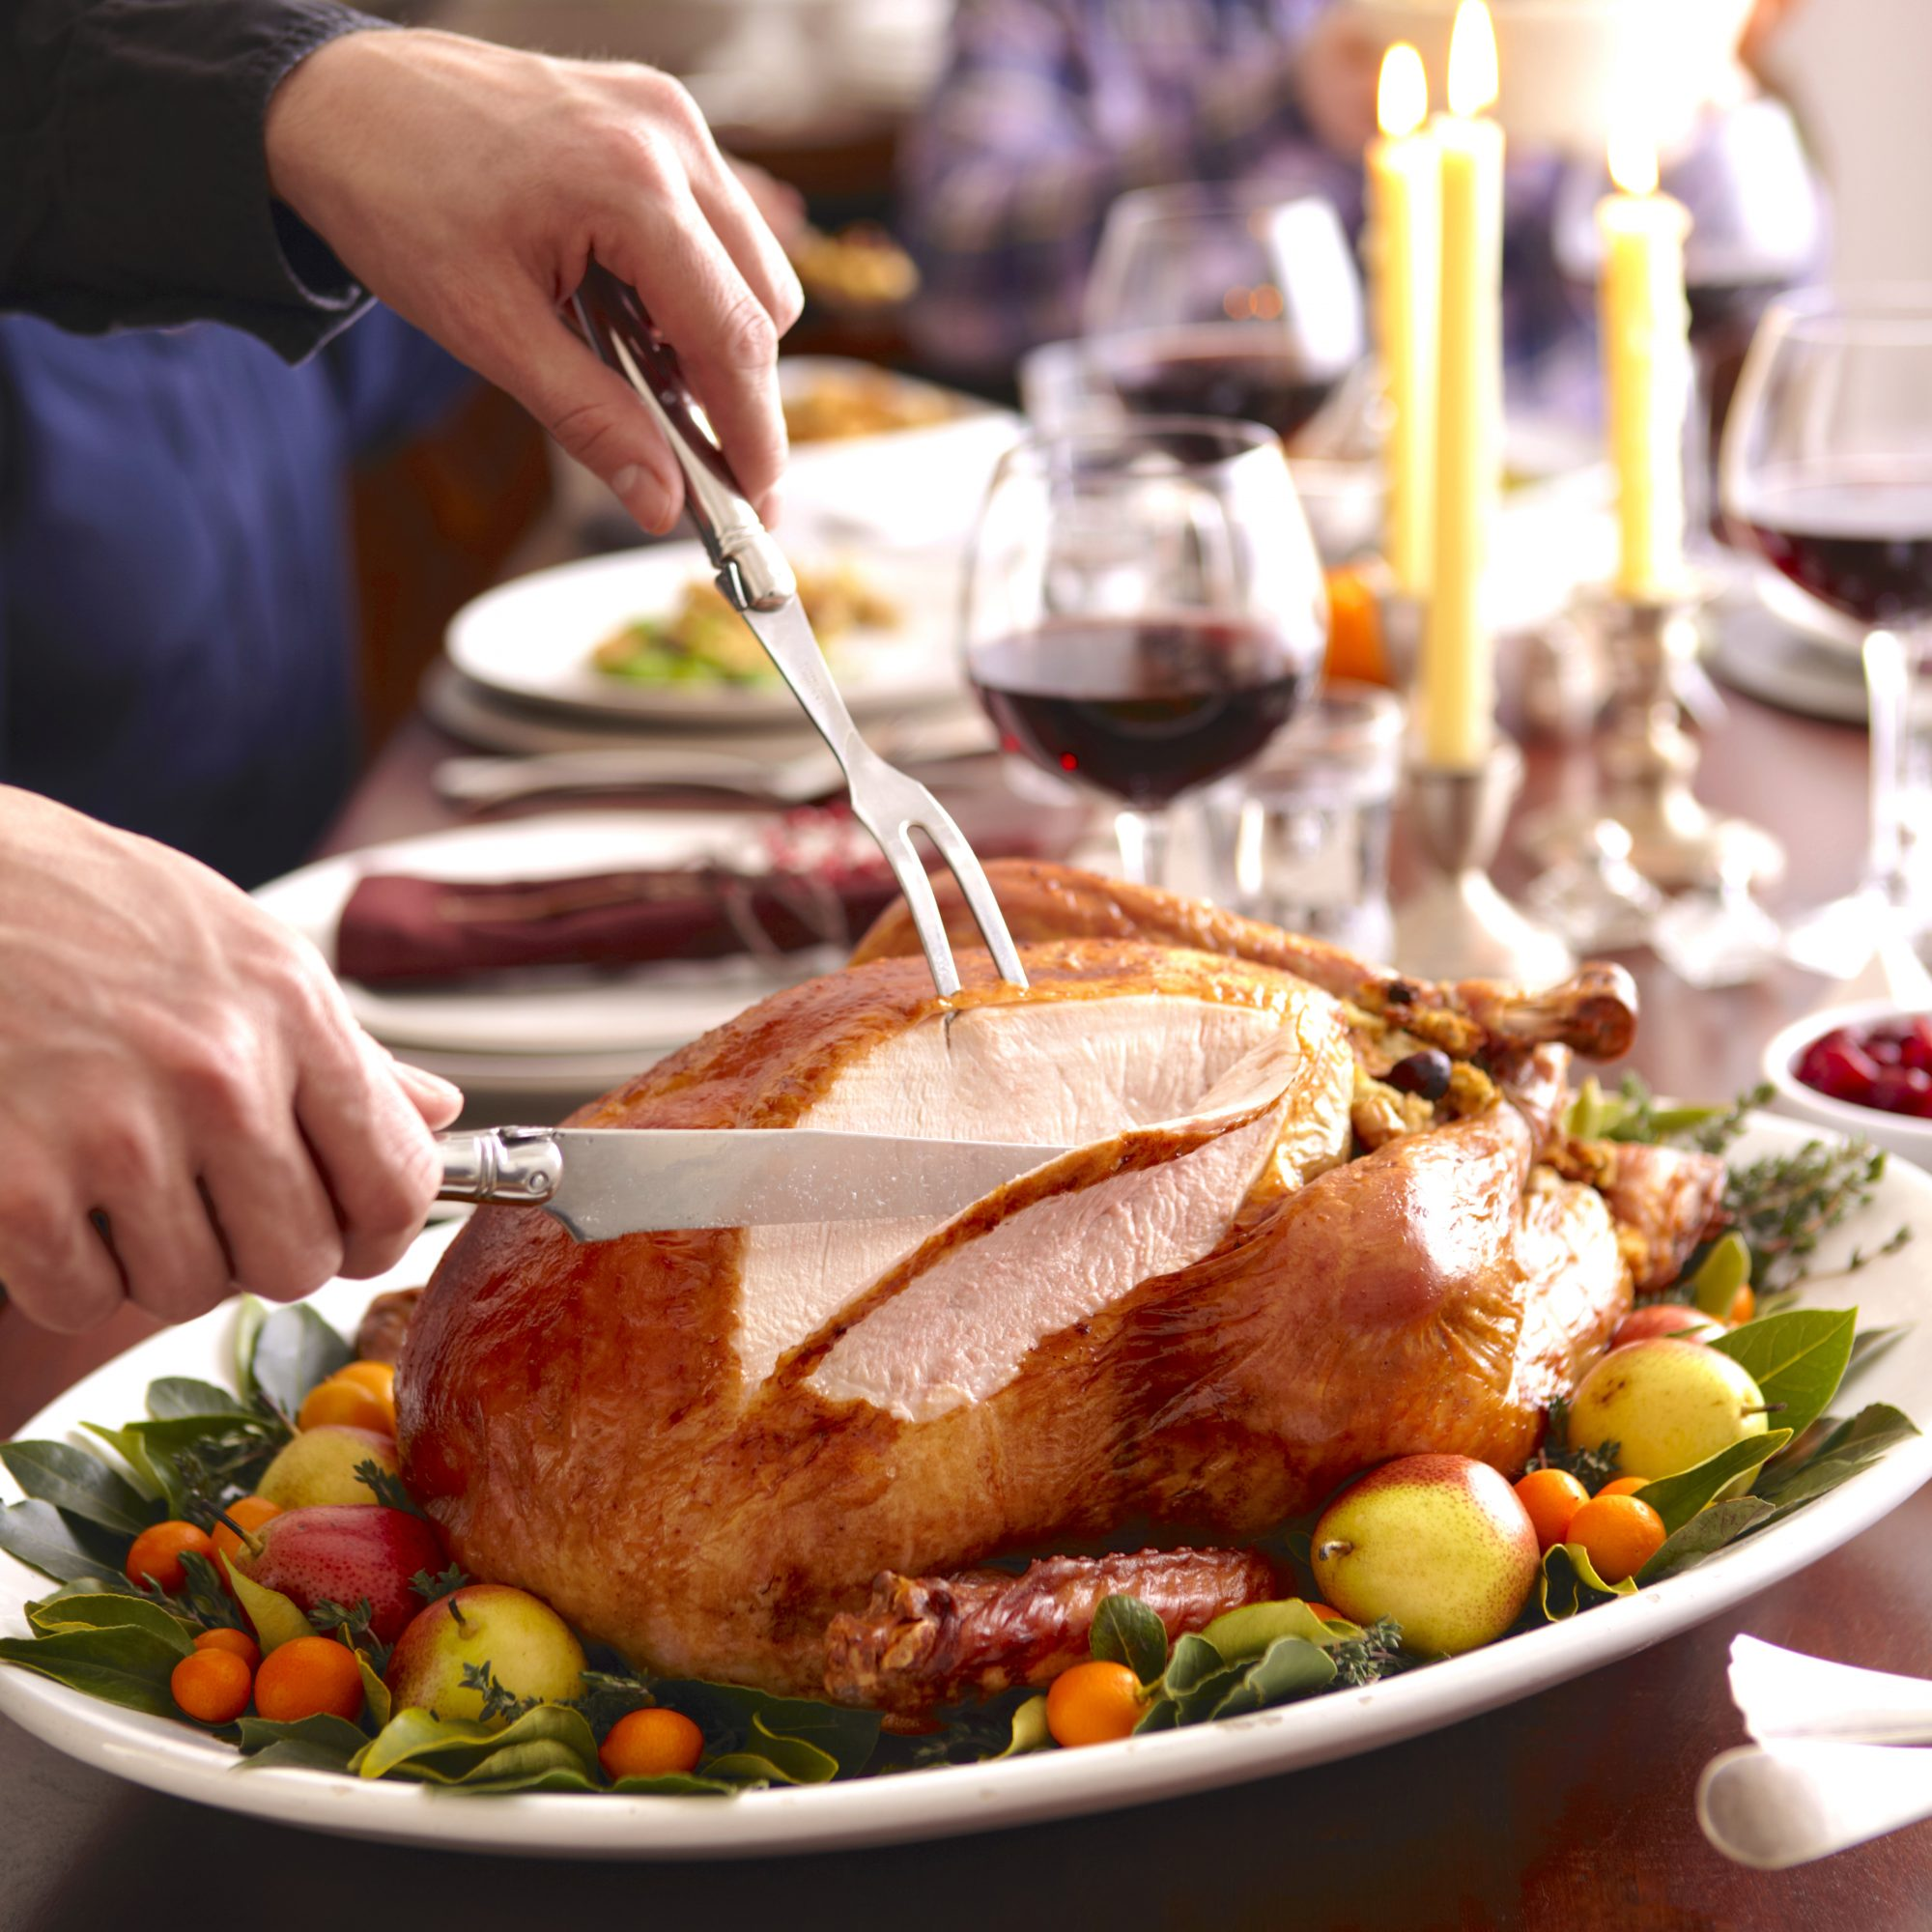 How Hollywood Food Stylists Make the Perfect Holiday Turkey